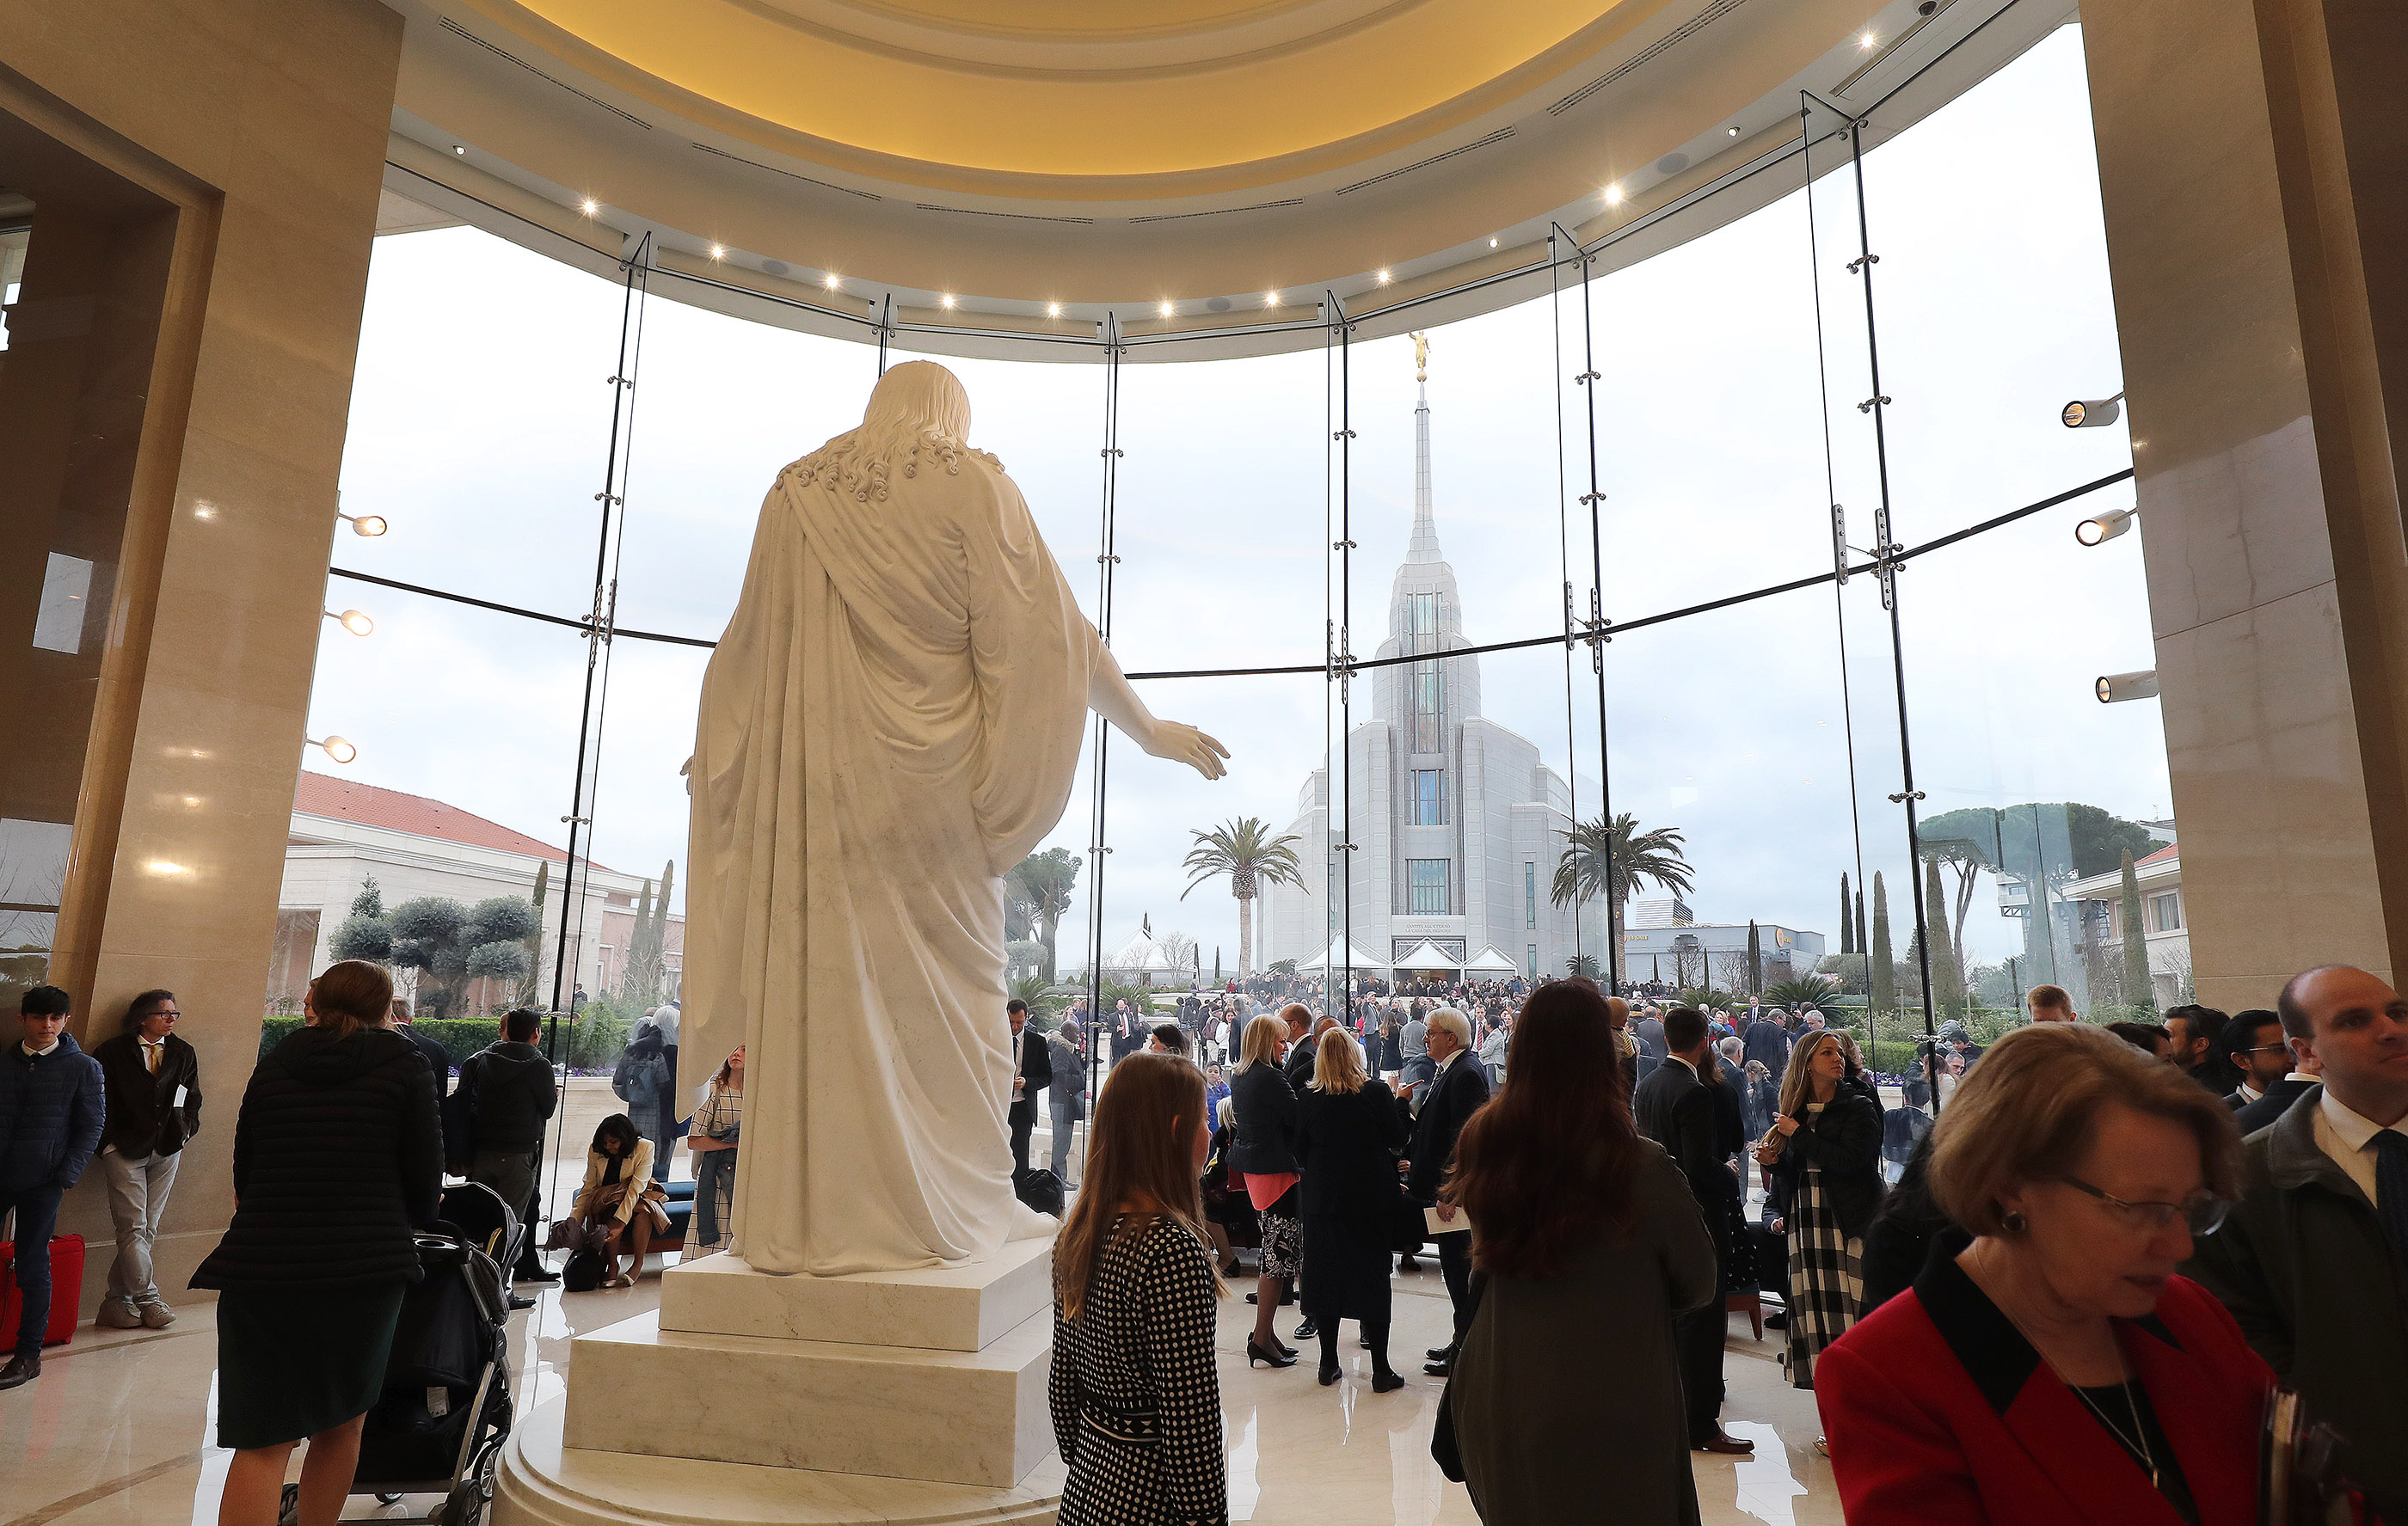 Visitors wander through the visitors' center during dedication of the Rome Italy Temple in Rome, Italy, on Sunday, March 10, 2019.